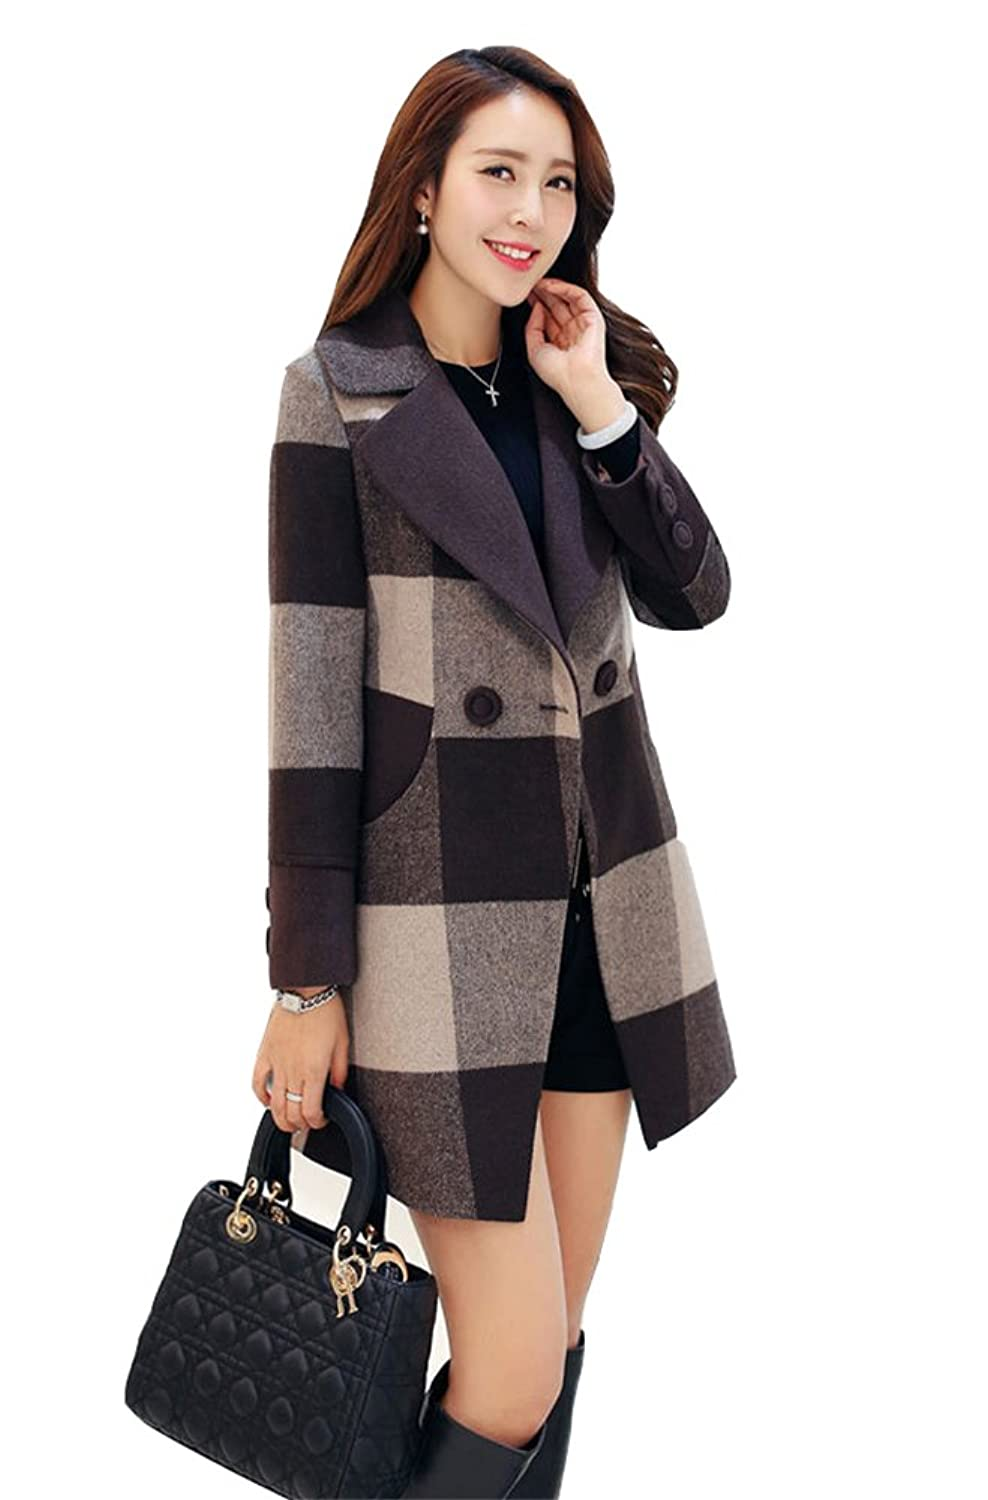 Allbebe Women's Winter Elegant Grid Print Button Pockets Front Midi Wool Coat